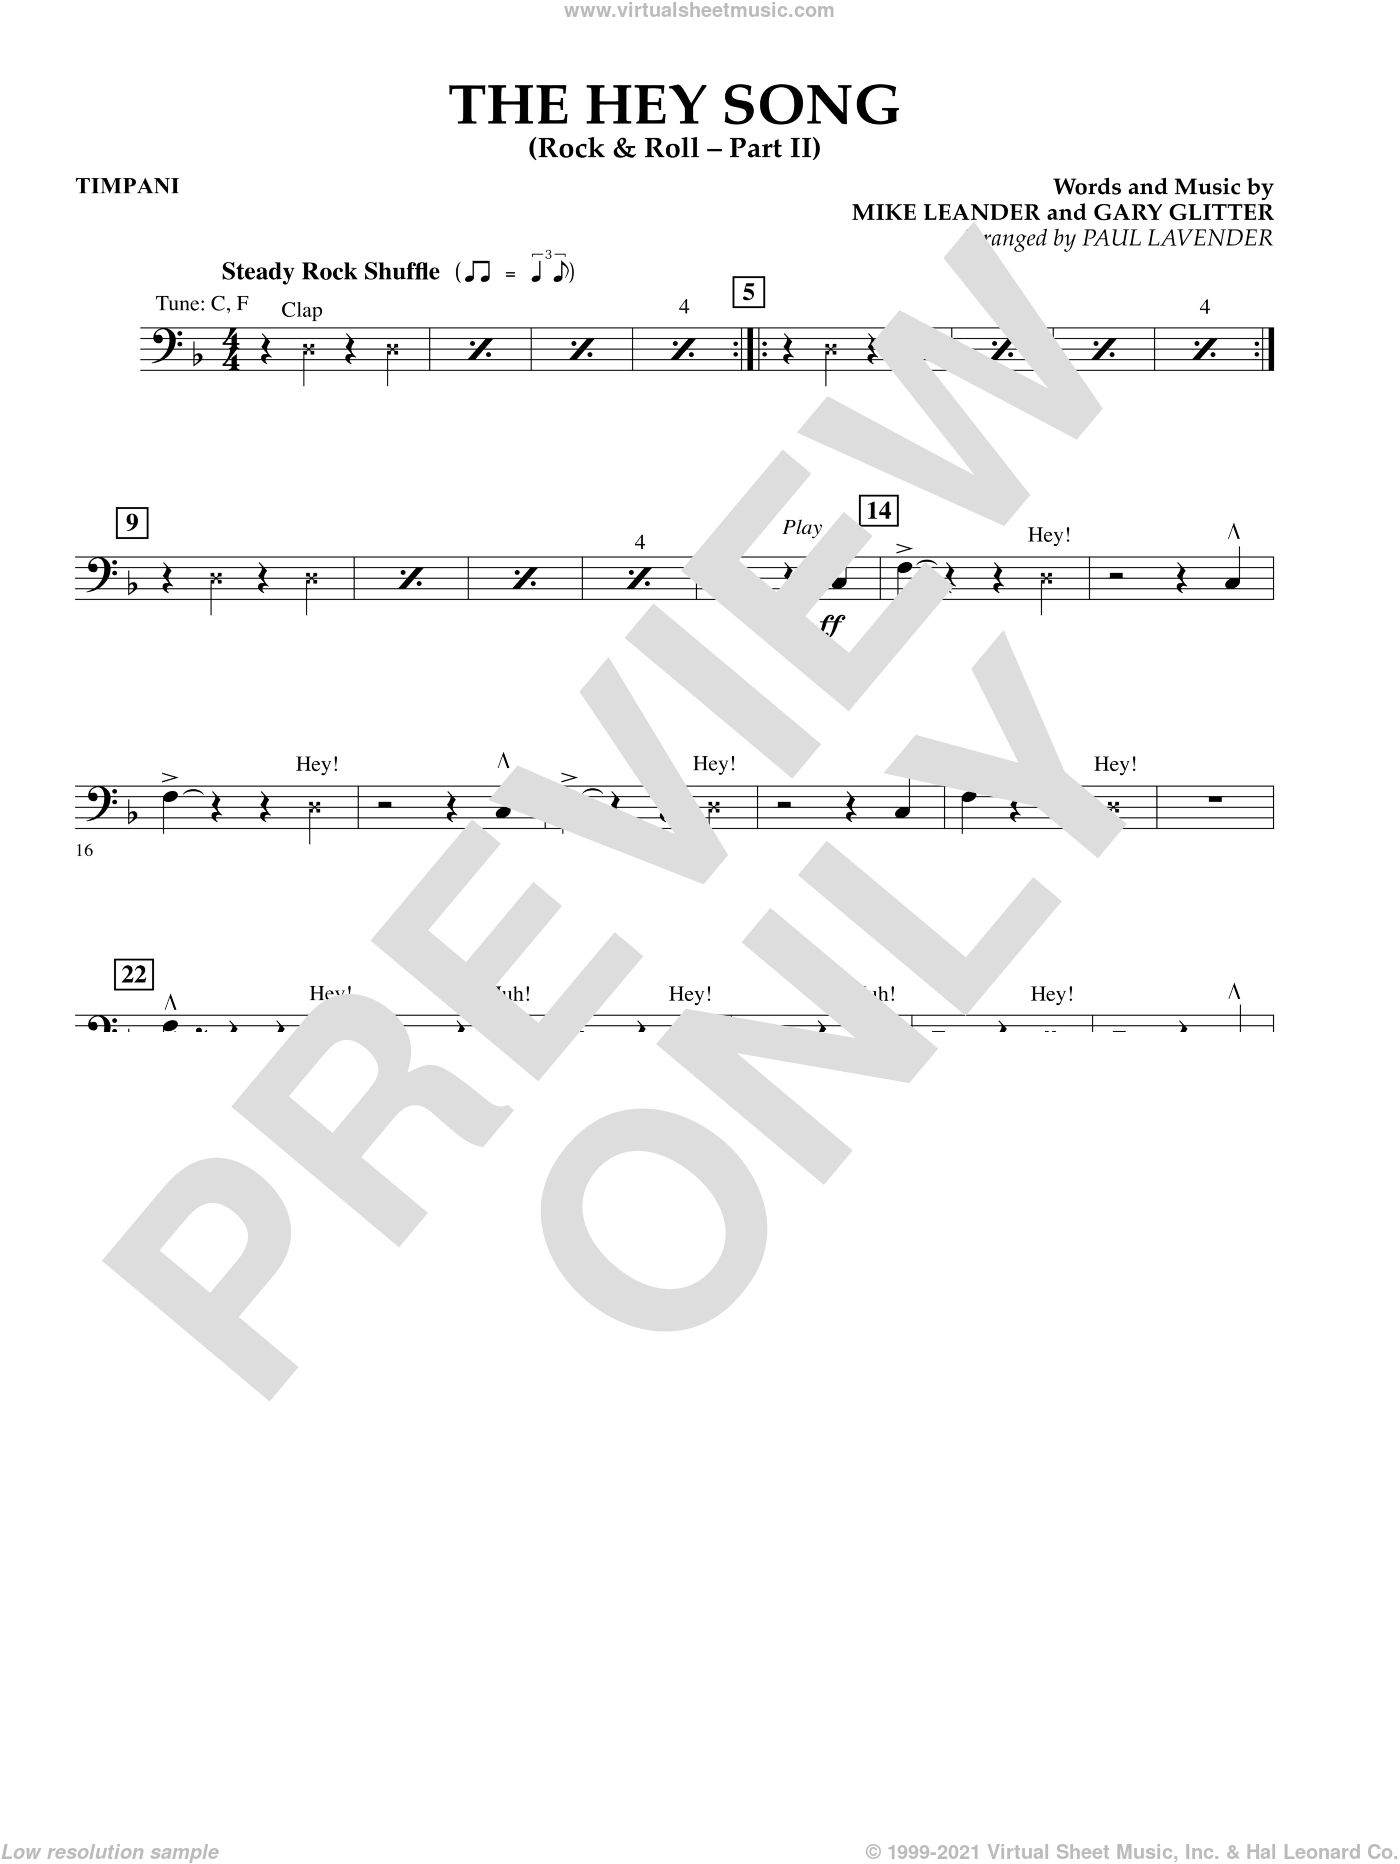 The Hey Song (Rock and Roll Part II) (Flex-Band) sheet music for concert band (timpani) by Gary Glitter, Paul Lavender and Mike Leander, intermediate skill level